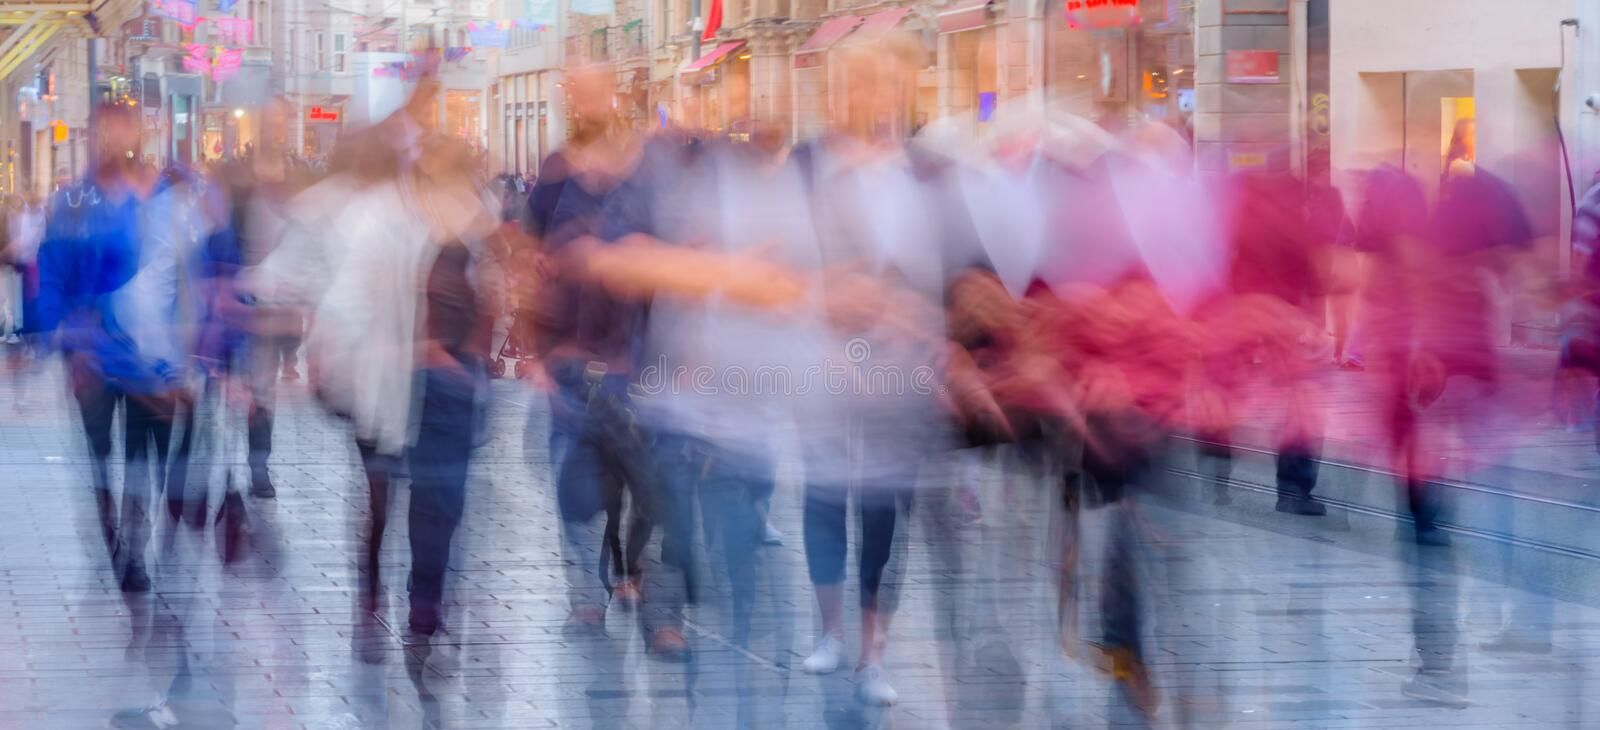 People walk at Istiklal street in Istanbul. Long exposure or slow shutter speed and blurred image:Unidentified people walk at Istiklal street,popular destination stock photography